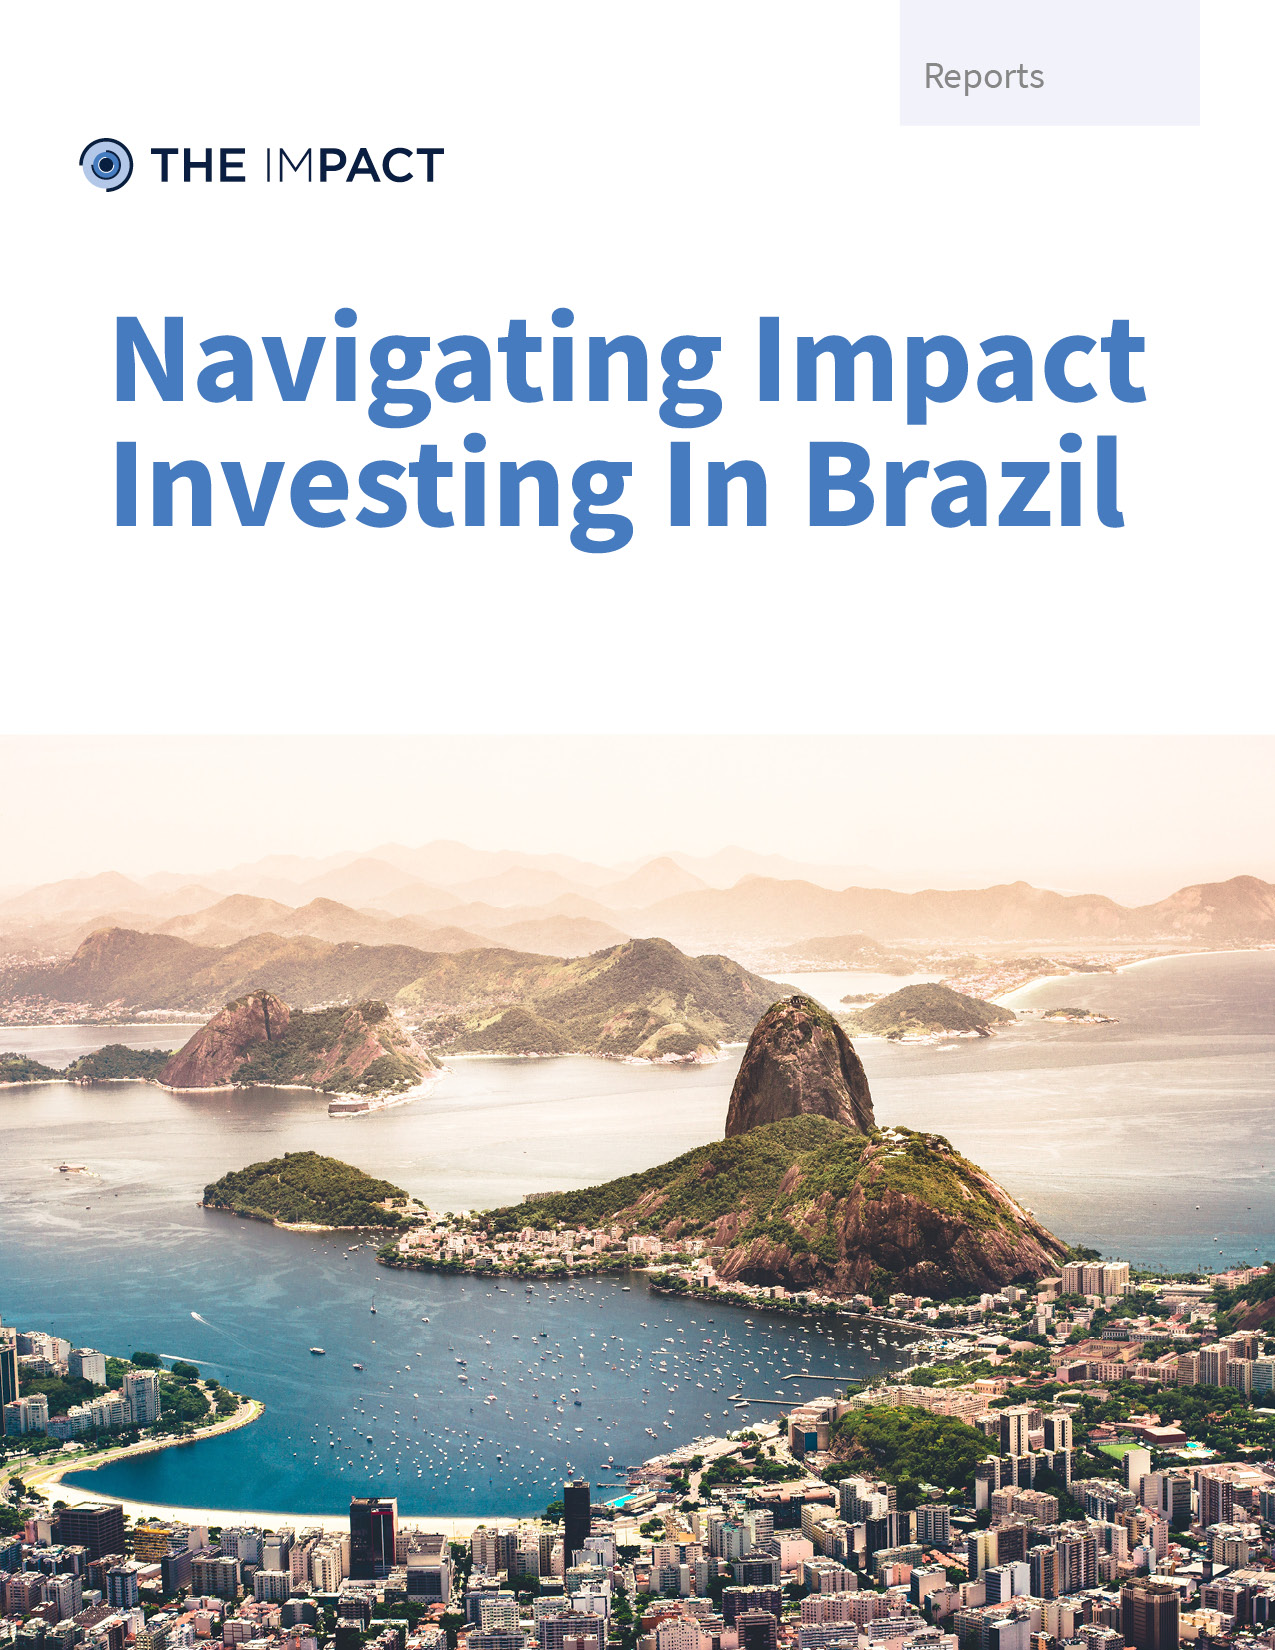 Navigating Impact Investing In Brazil. A report by The ImPact